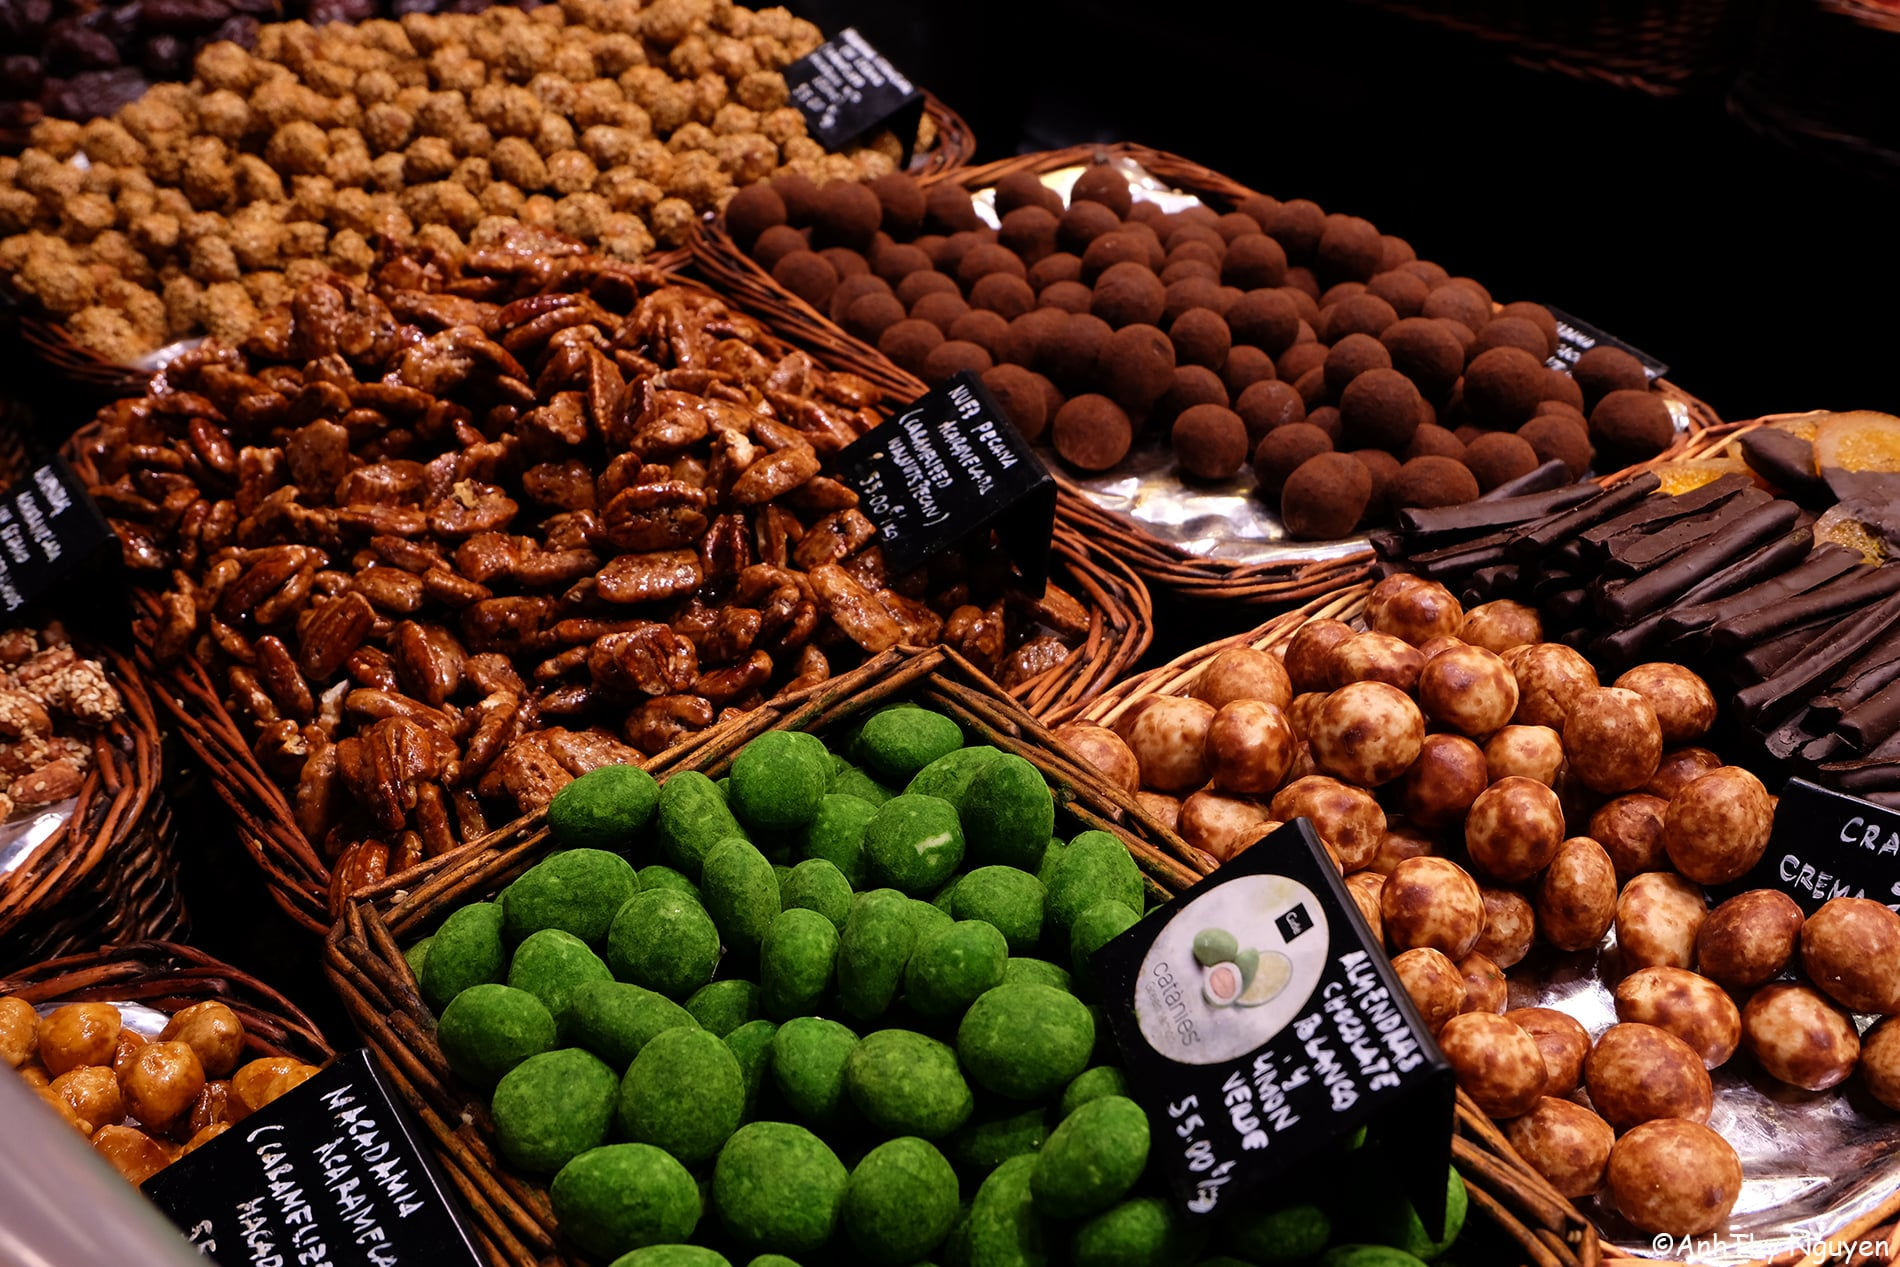 La Boqueria Food Market Barcelona - Chocolate and Nut